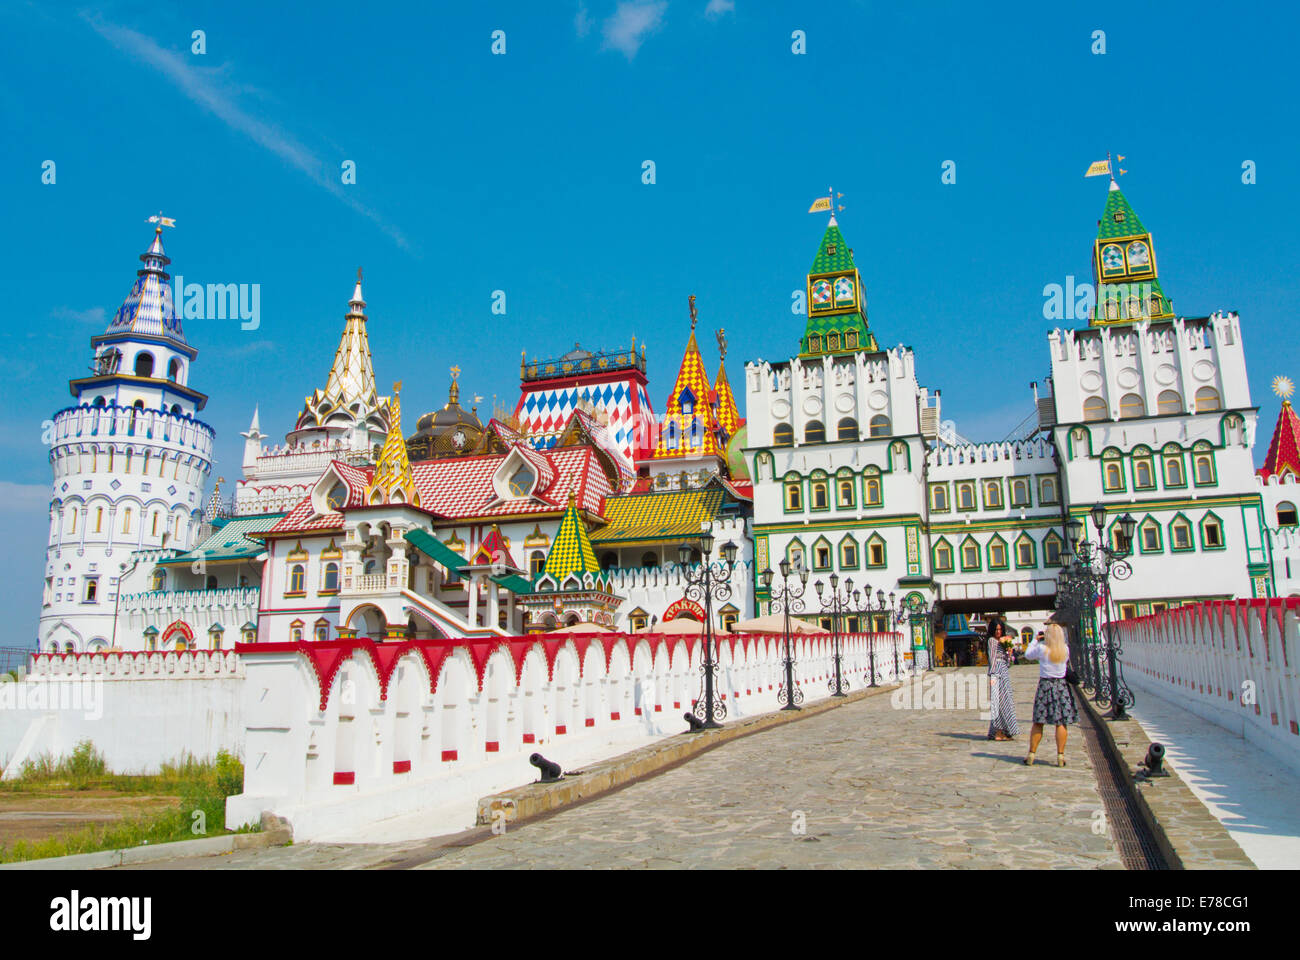 Izmaylovo Kremlin, Izmaylovo district, Moscow, Russia, Europe - Stock Image